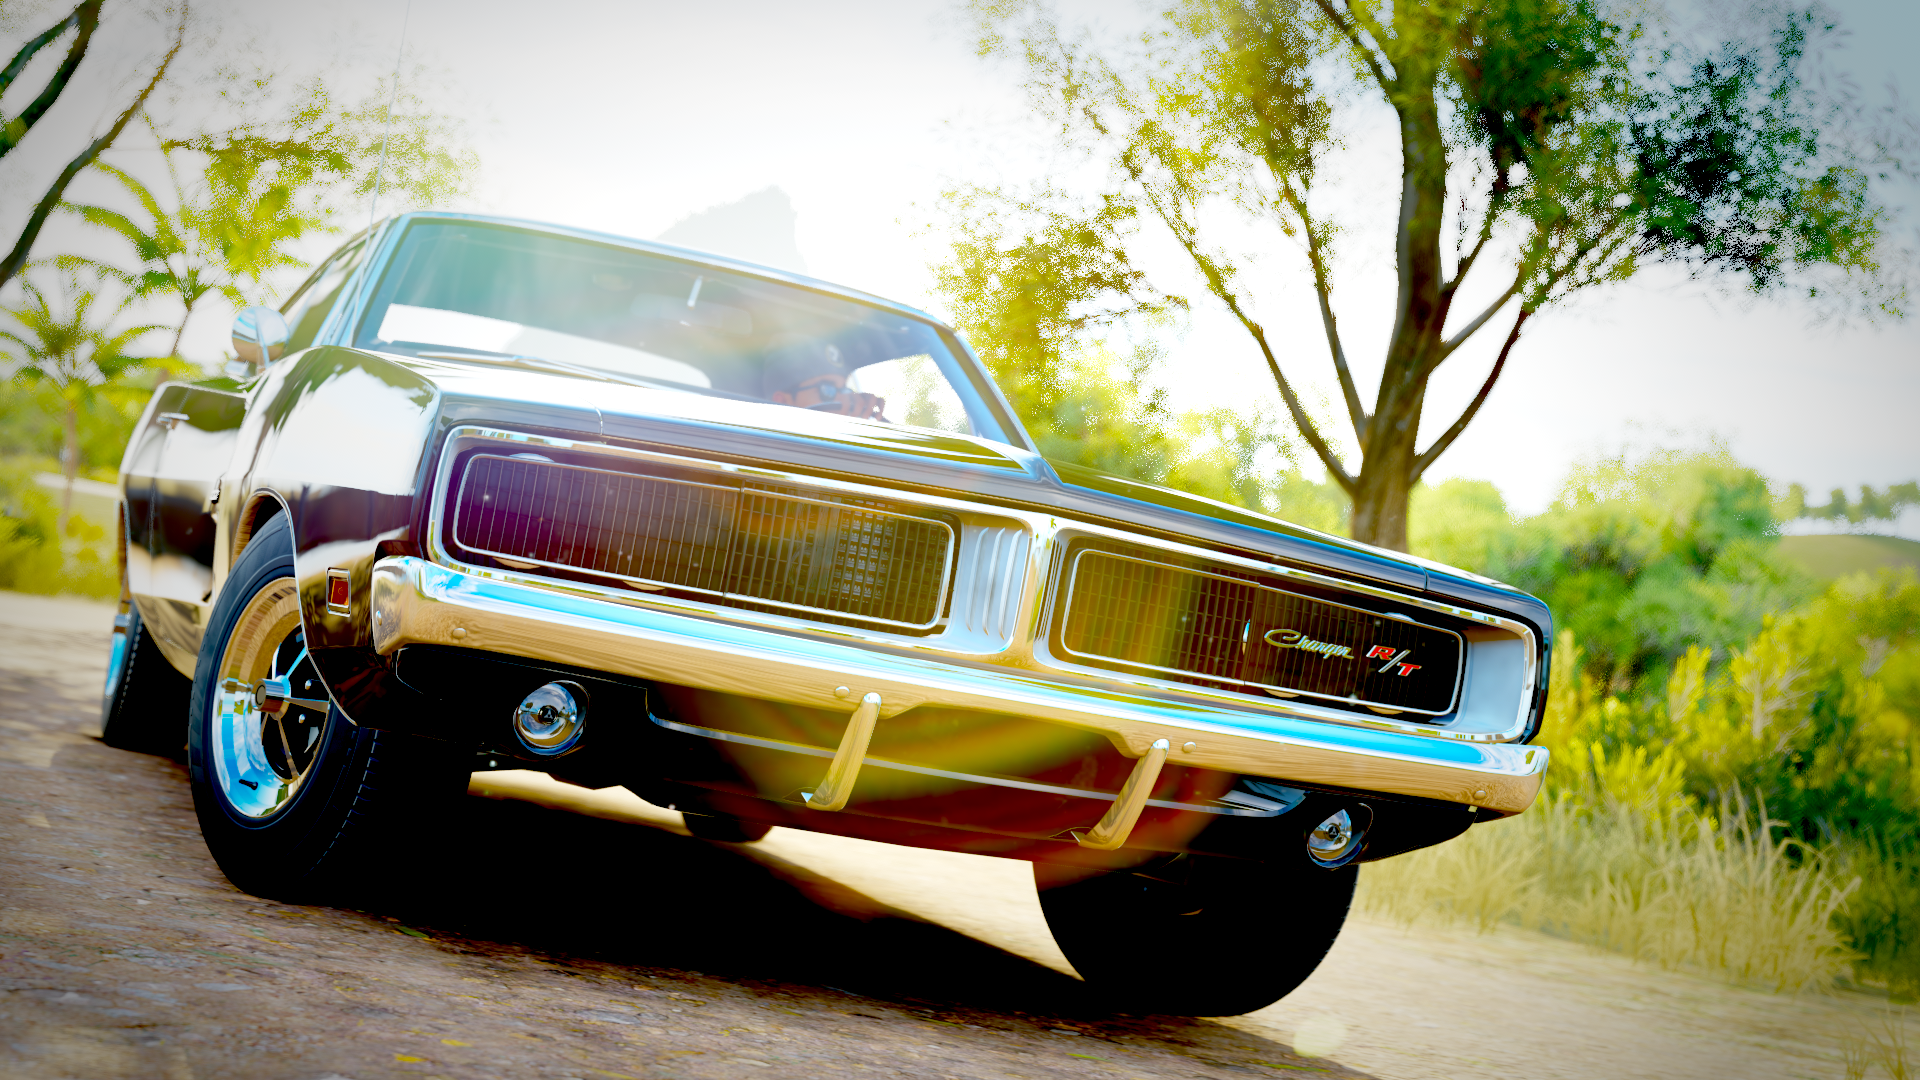 Forza Horizon 3 Cars 1968 Dodge Charger Drag Car 1969 R T Photo By Focusatze